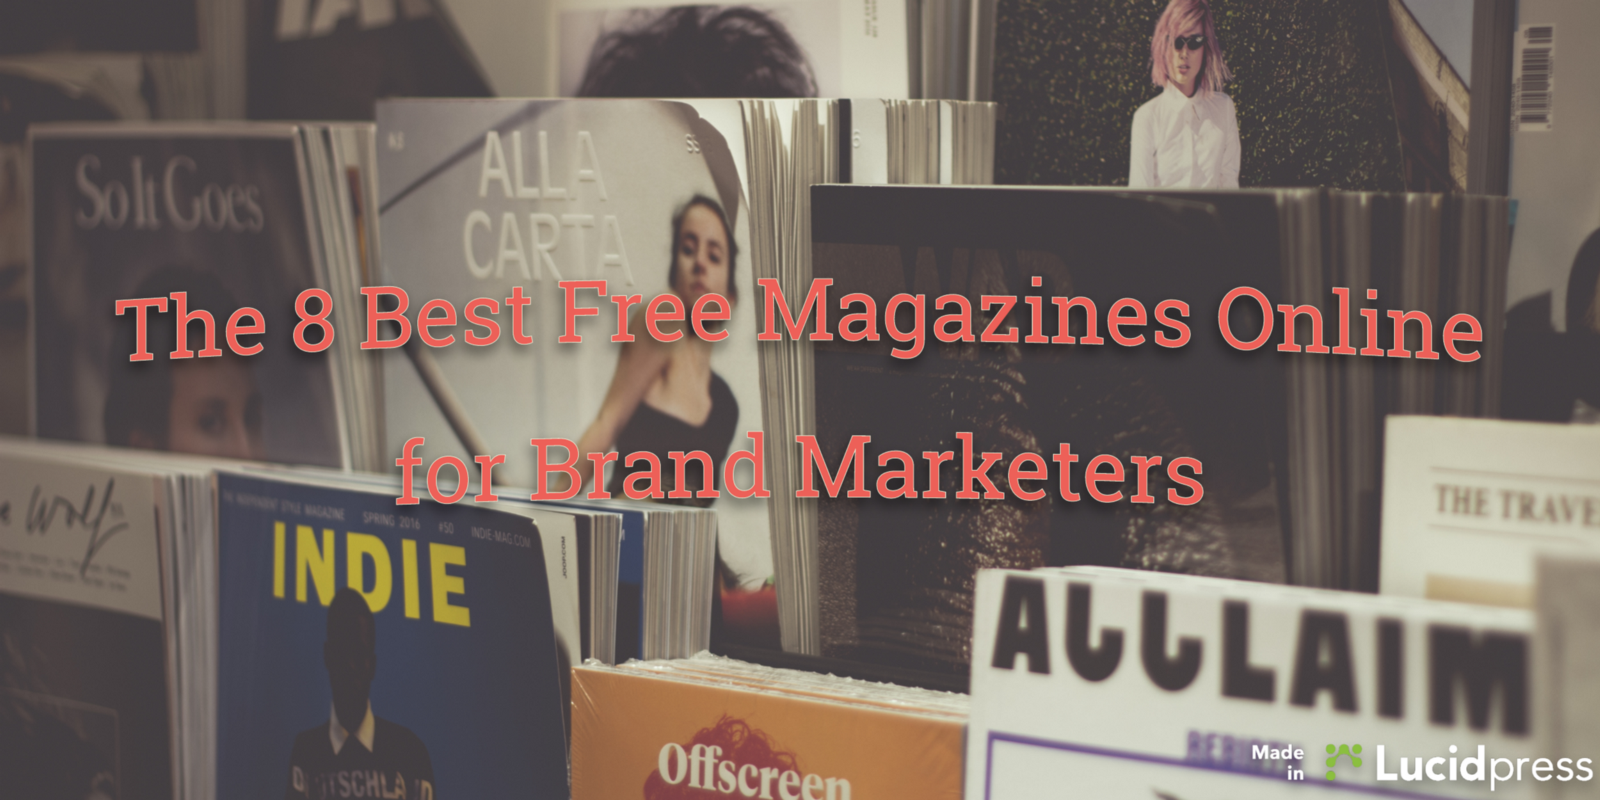 The 8 best free magazines online for brand marketers